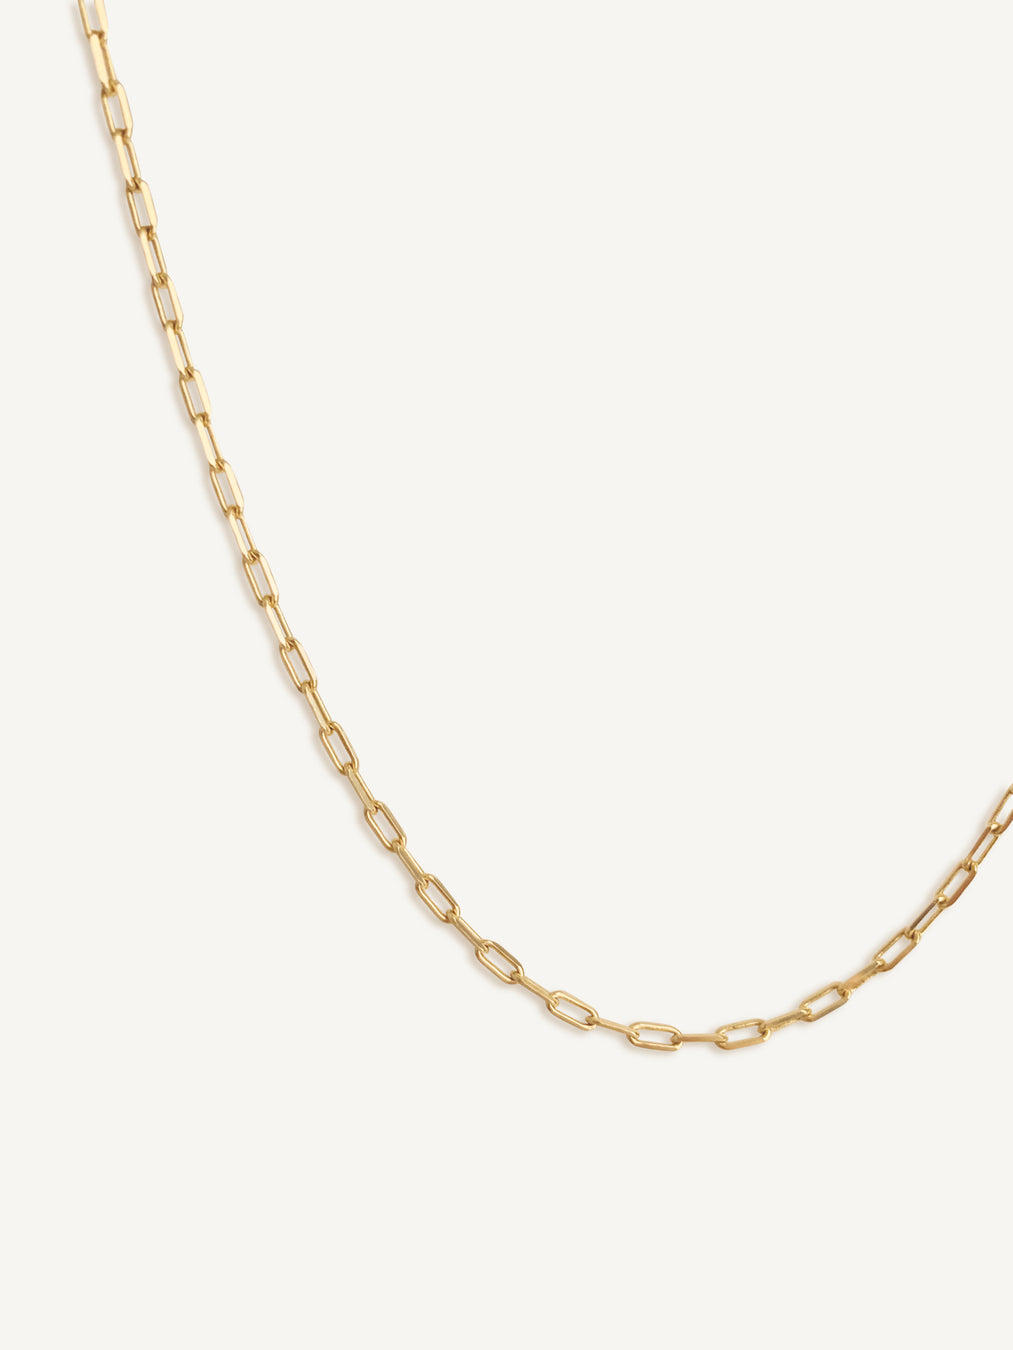 Pico Link Chain Necklace